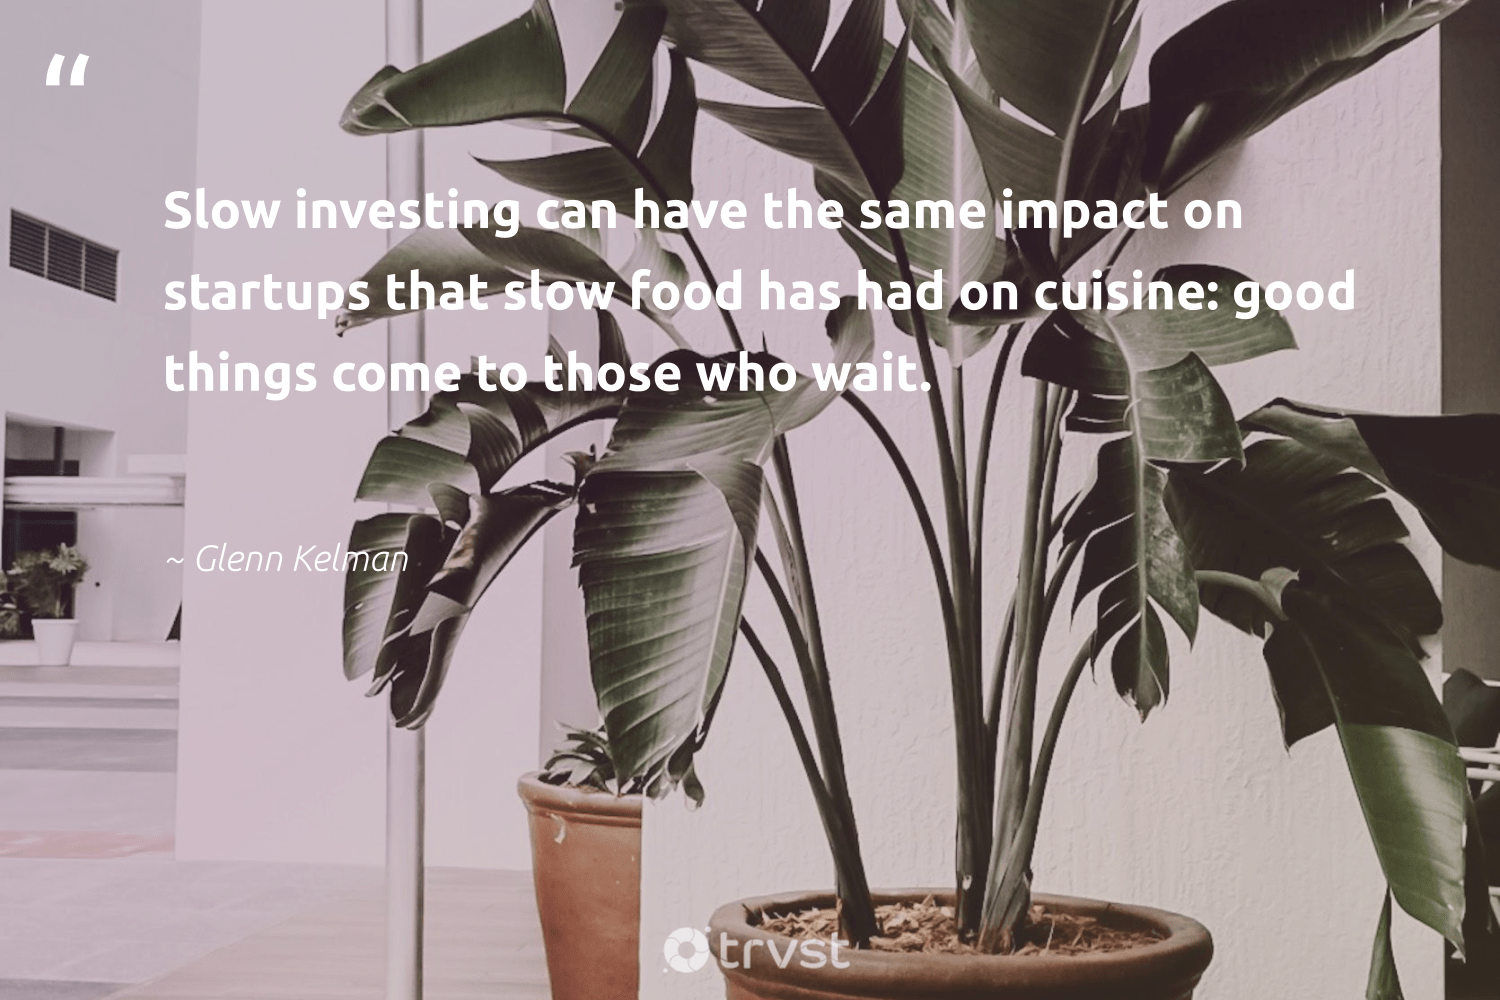 """""""Slow investing can have the same impact on startups that slow food has had on cuisine: good things come to those who wait.""""  - Glenn Kelman #trvst #quotes #impact #food #hunger #giveback #equalrights #collectiveaction #foodforthepoor #socialchange #inclusion #dotherightthing"""